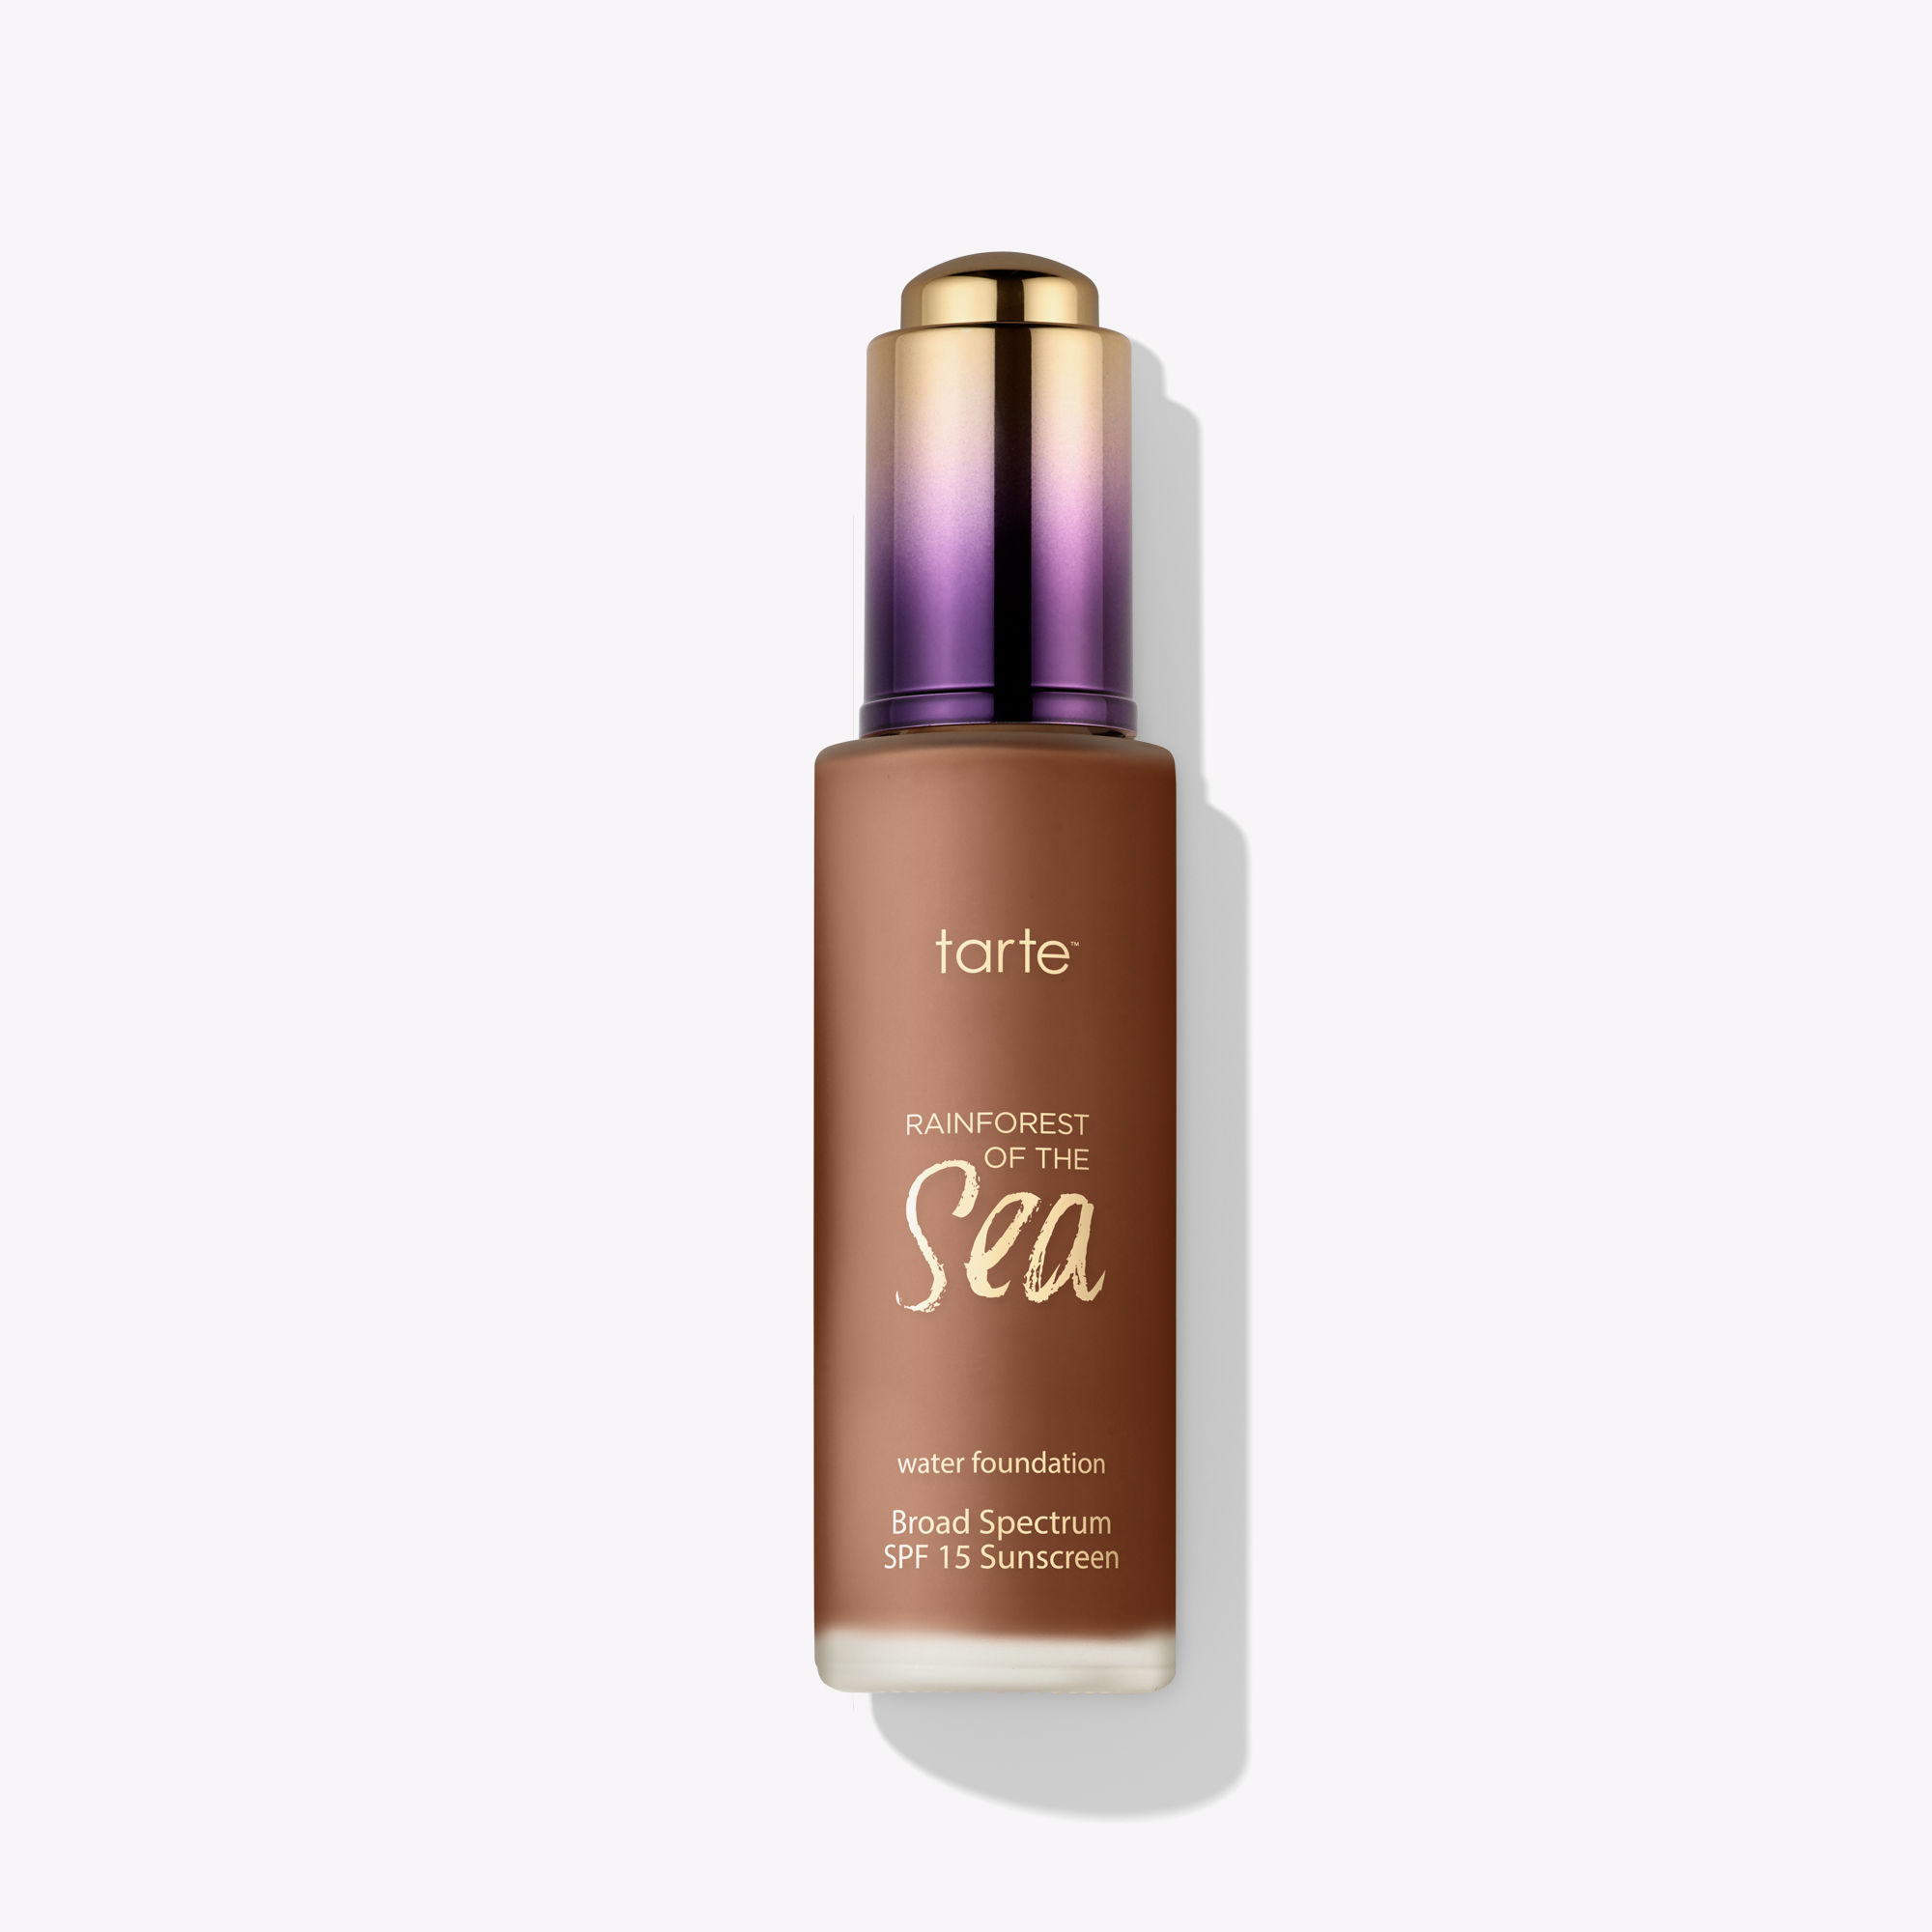 tarte™ rainforest of the sea water foundation Broad Spectrum SPF 15